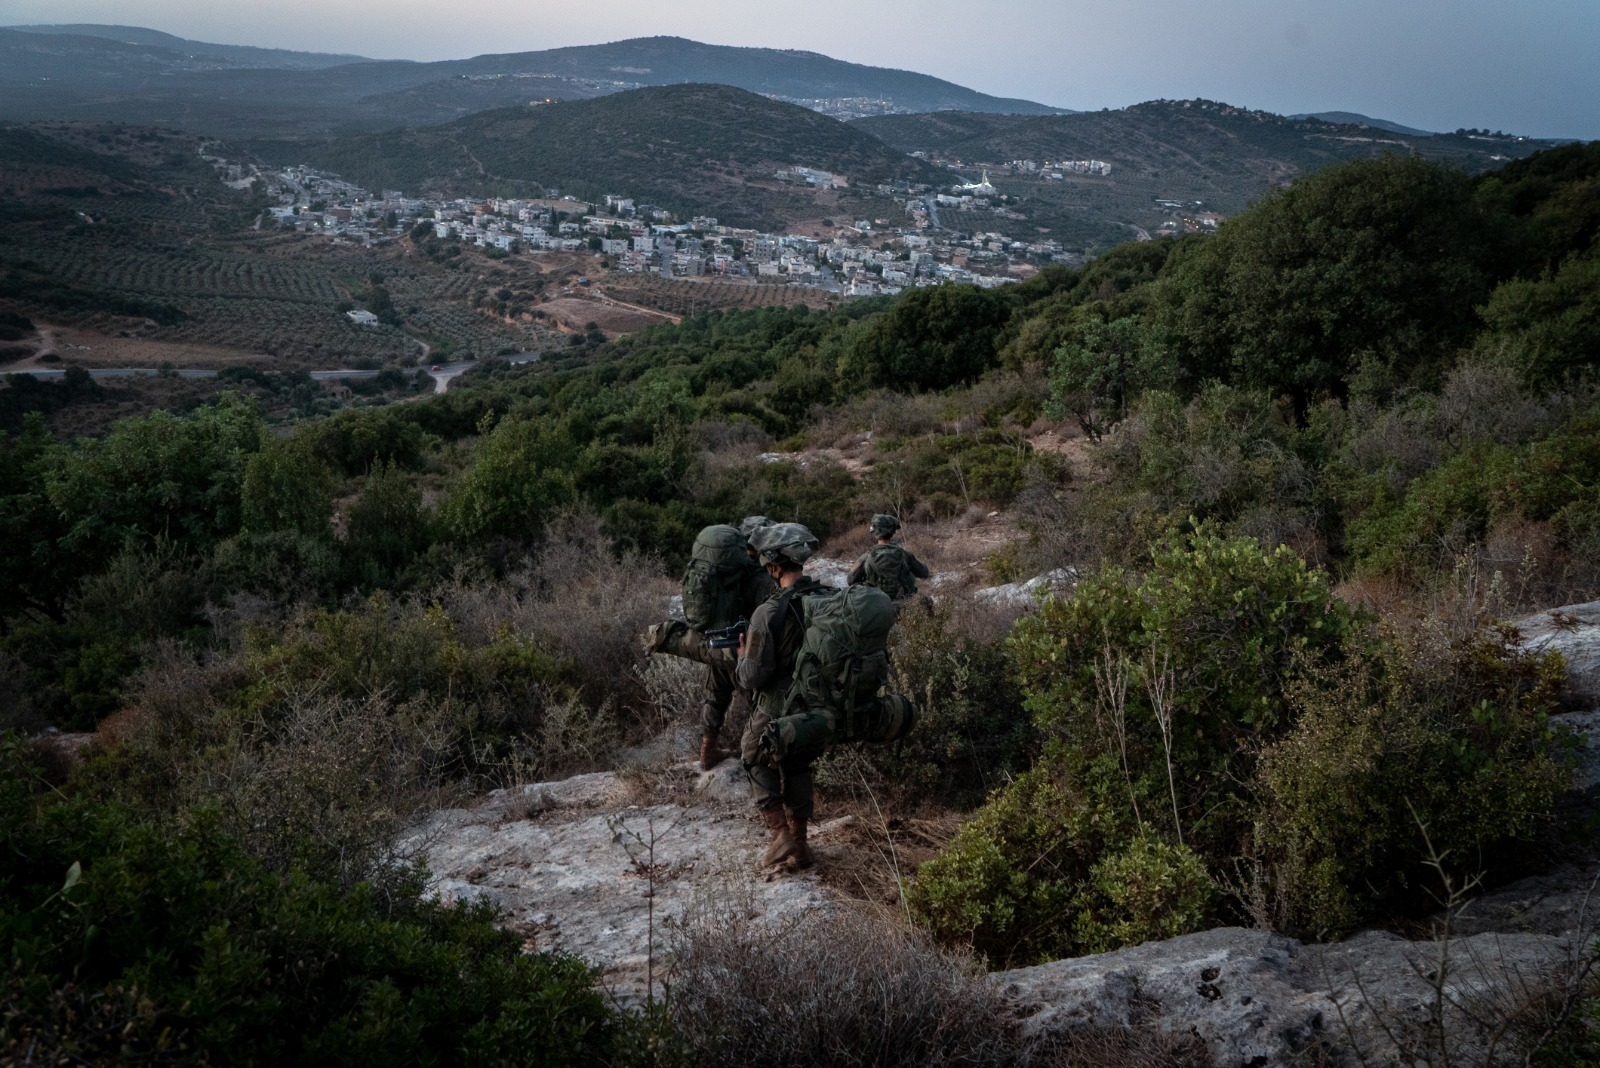 Soldier's gun stolen in attack during exercise; IDF chief: 'Red line crossed'